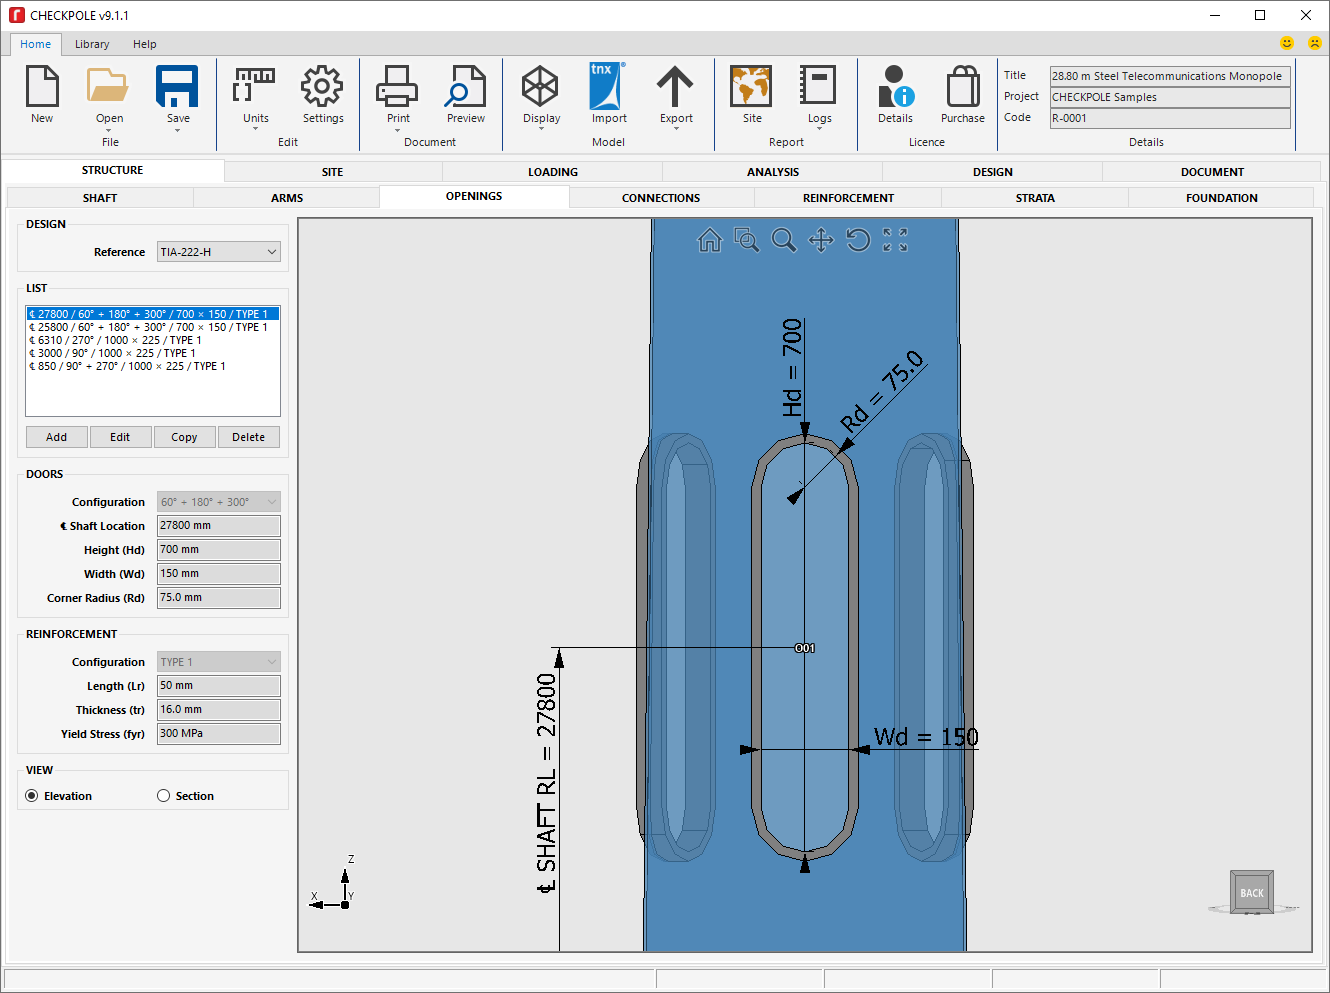 CHECKPOLE Monopole Analysis & Design Software | revolutio